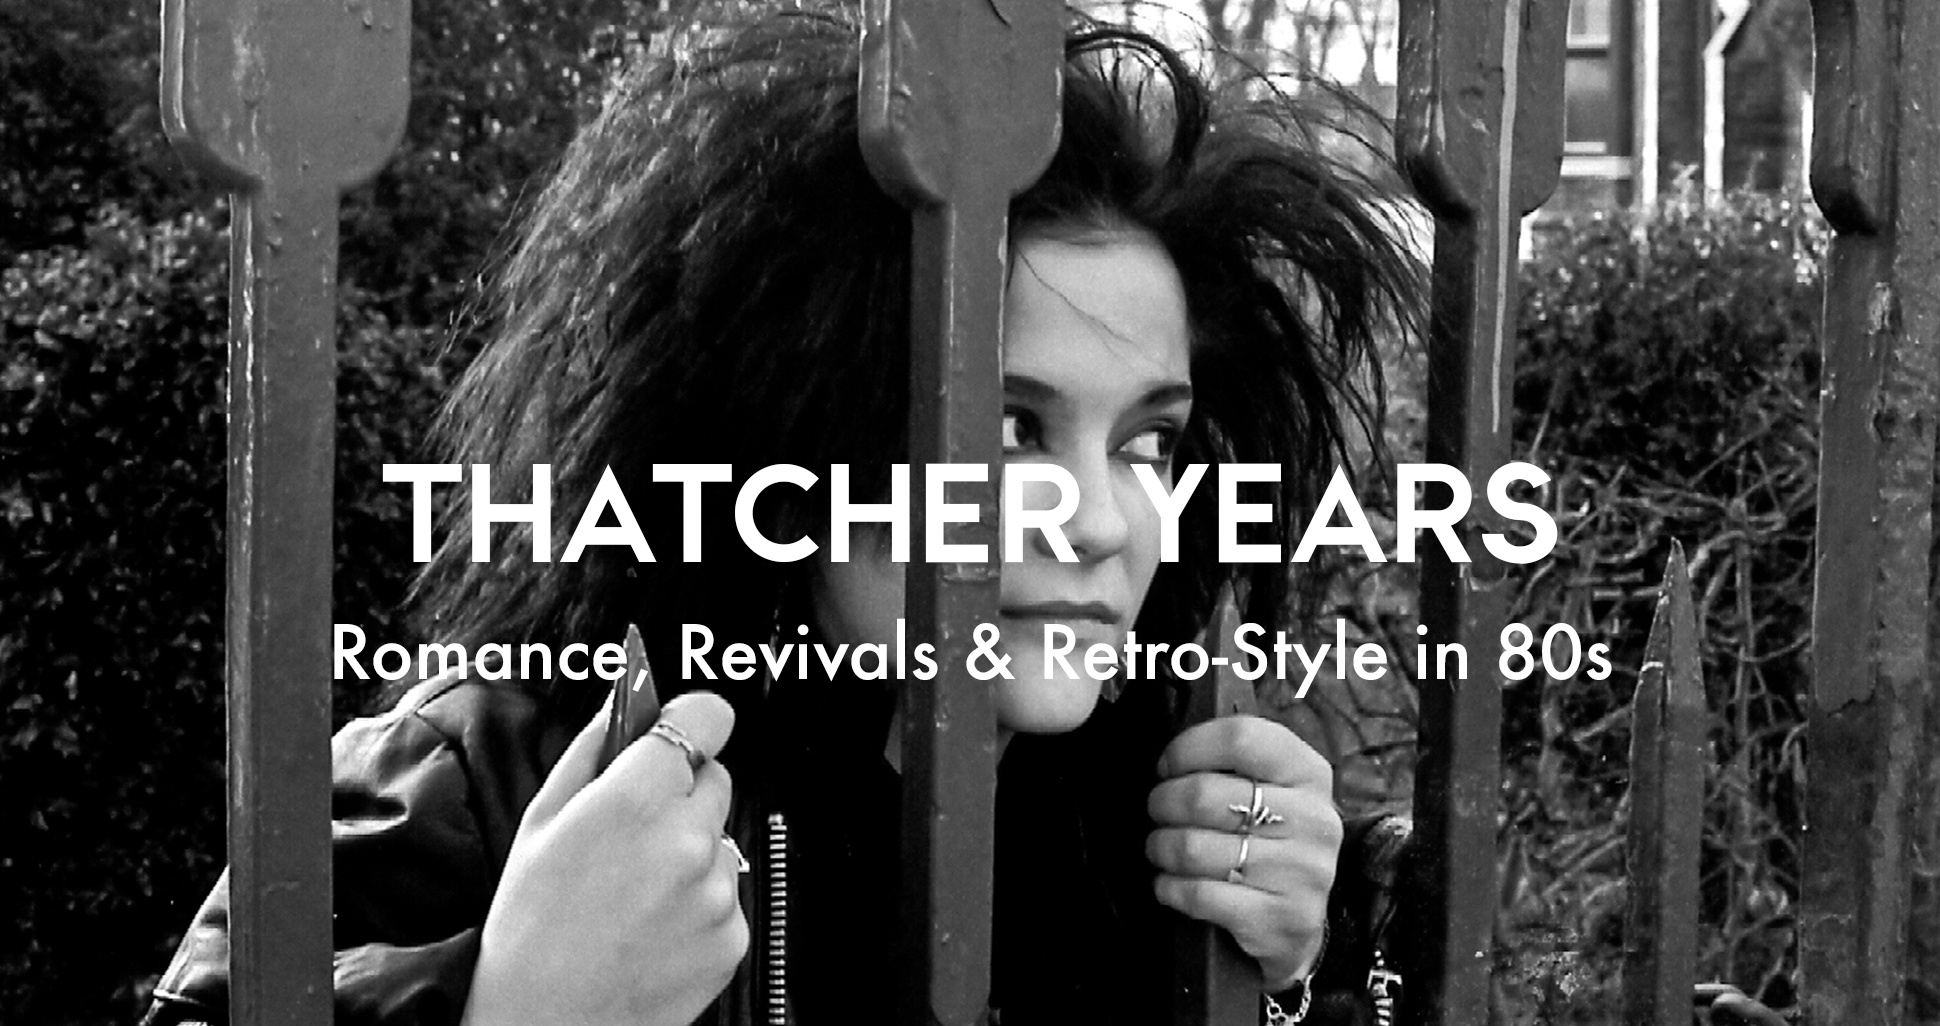 The history of British youth culture: Thatcher years, romance revivals and retro styles in the 80s